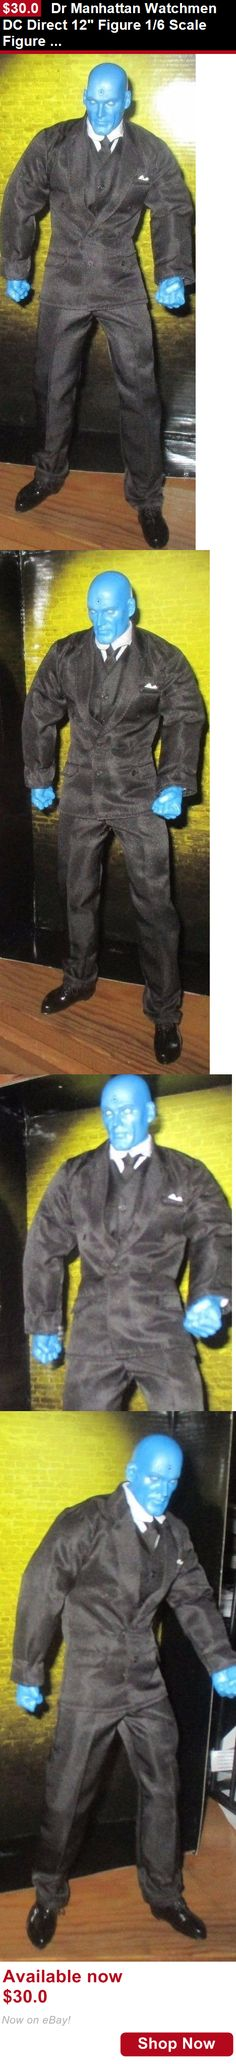 Telescope Mirrors And Prisms: Dr Manhattan Watchmen Dc Direct 12 Figure 1/6 Scale Figure New Loose BUY IT NOW ONLY: $30.0